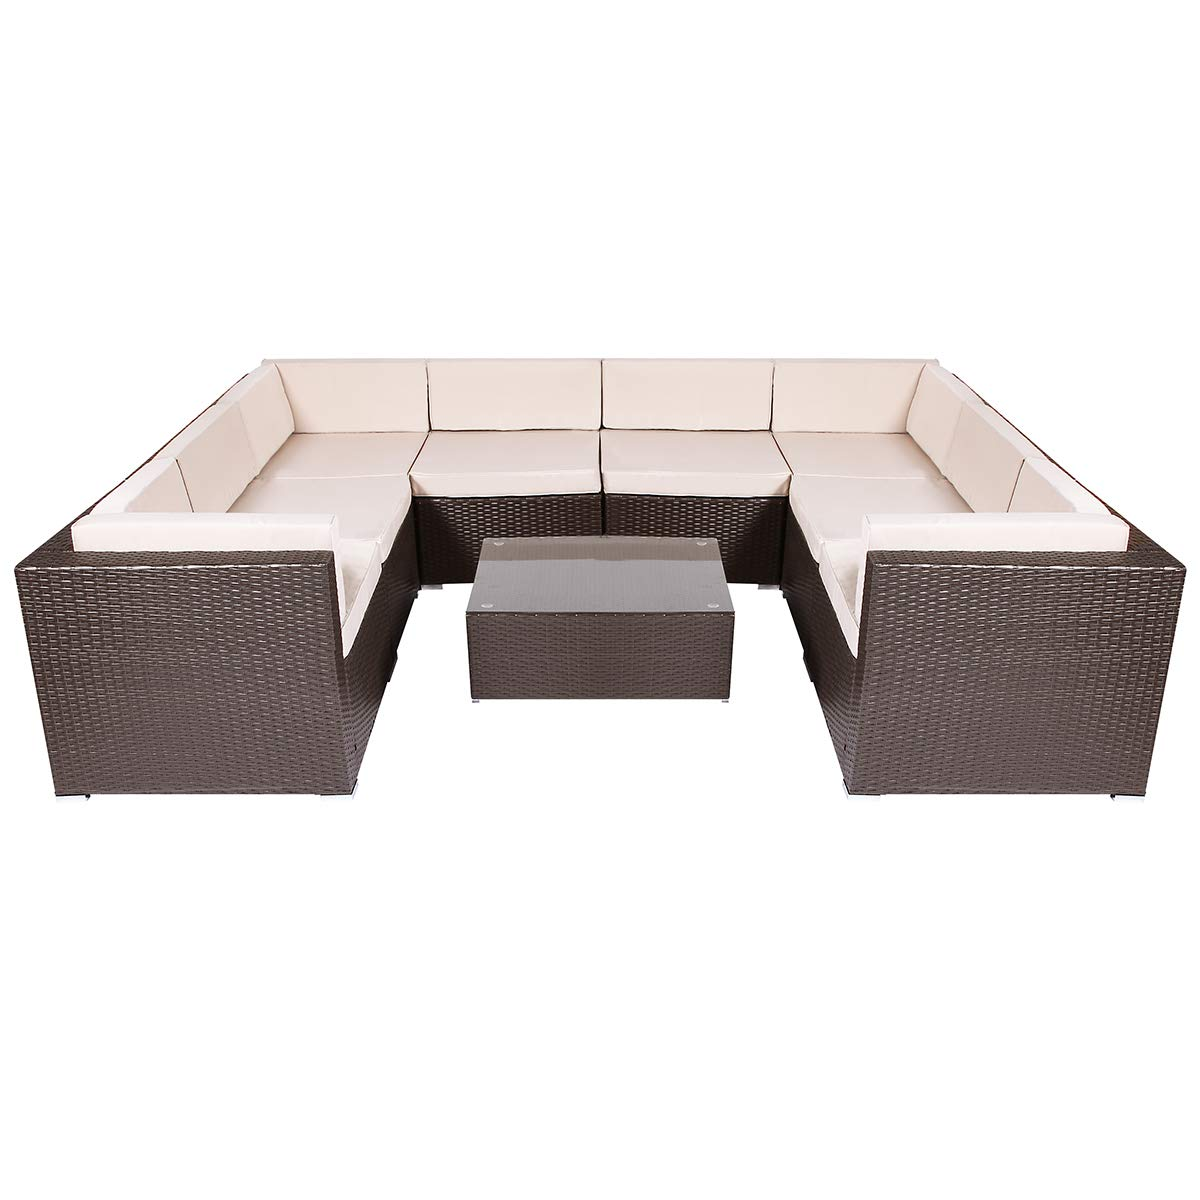 U-MAX 5-14 Pieces Patio PE Rattan Wicker Sofa Sectional Furniture Set 9-Pieces, Brown